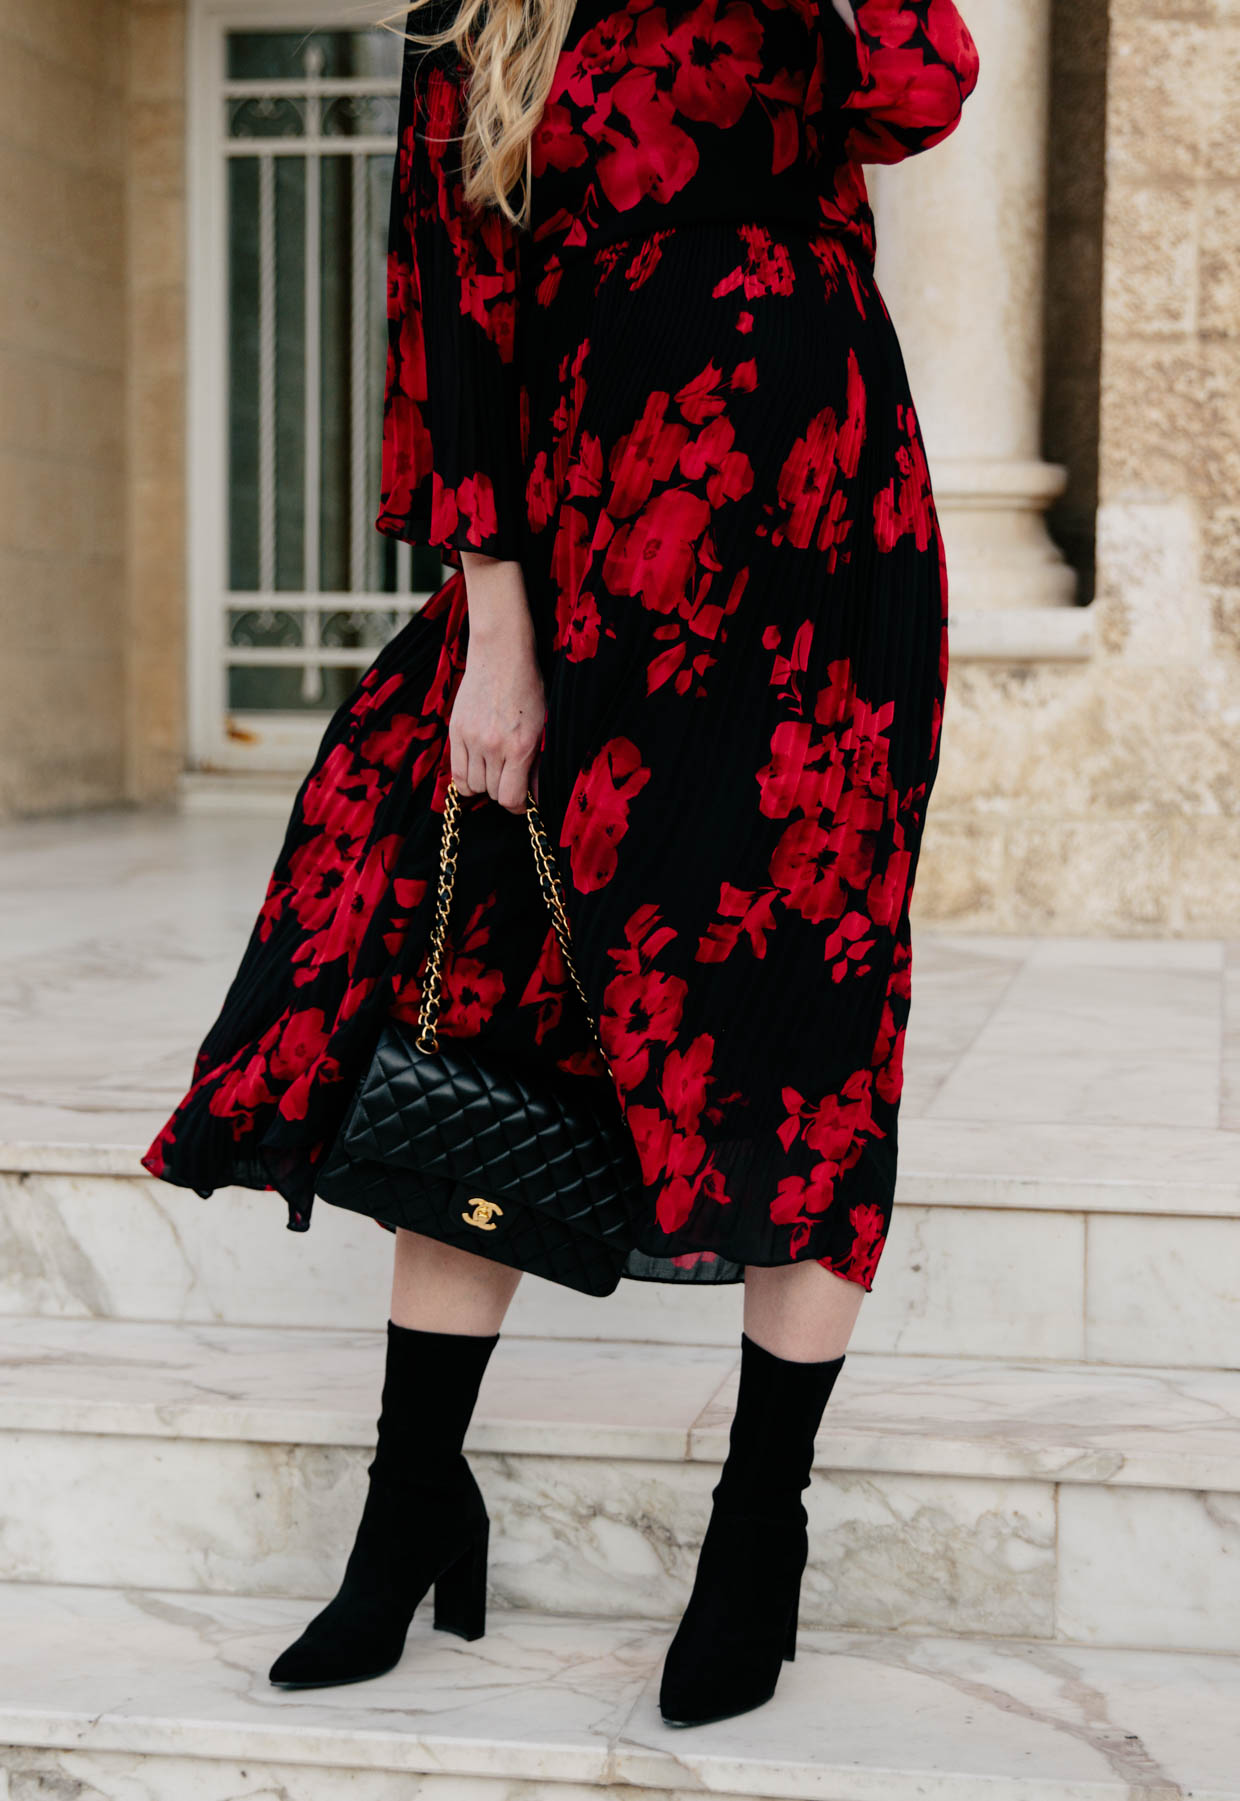 Dark Romance Floral Midi Dress With Sock Boots Meagan S